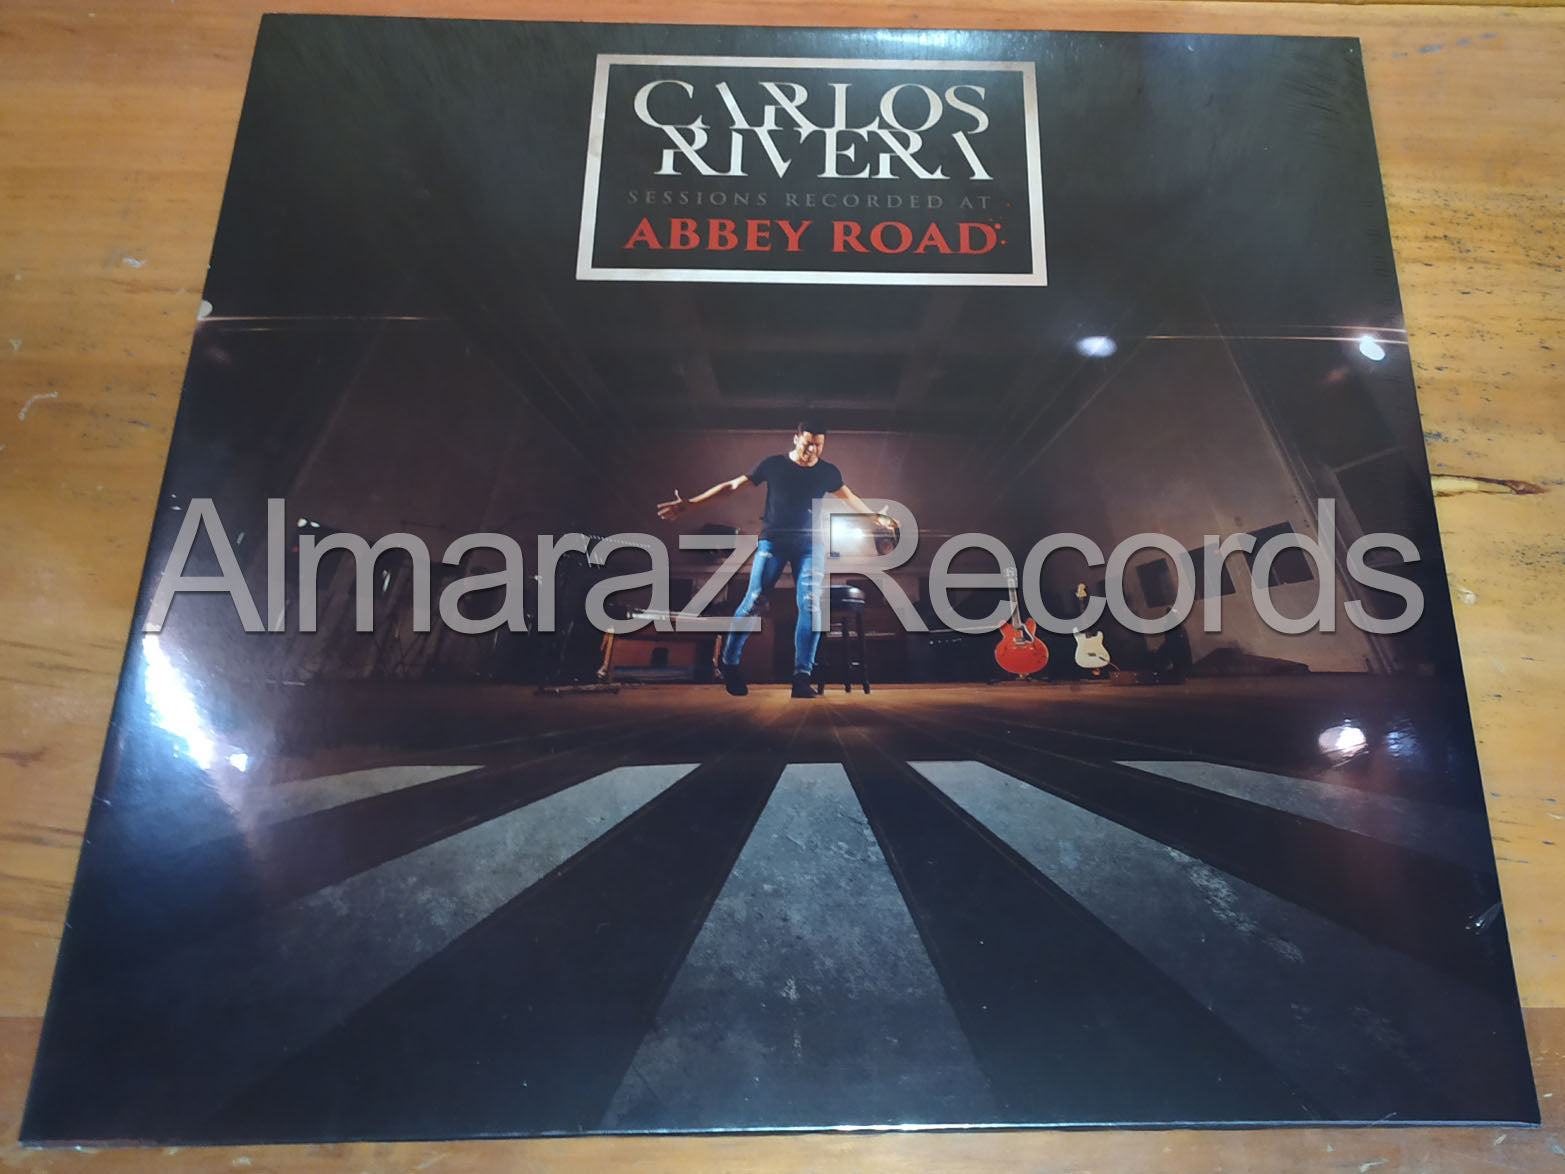 Carlos Rivera Sessions Recorded At Abbey Road Vinyl Lp